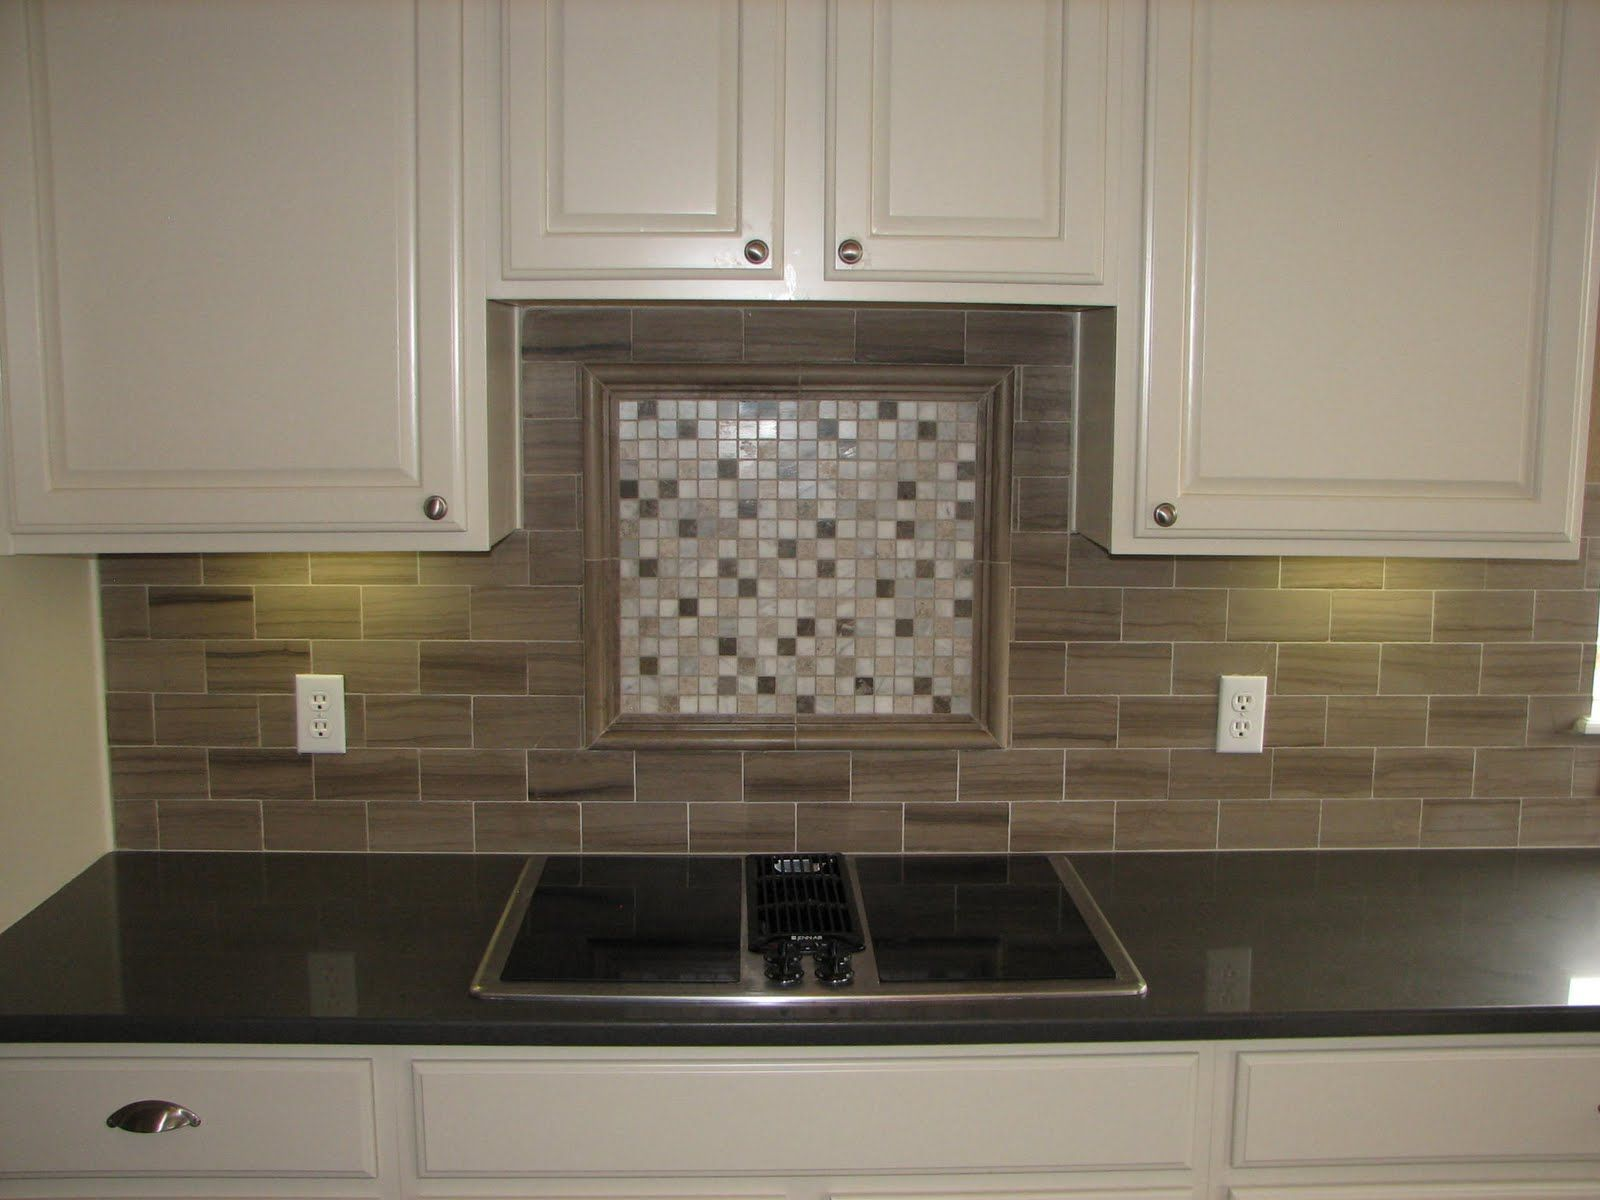 Tile Backsplash With Black Cuntertop Ideas Tile Design Backsplash Photos Backsplash Design